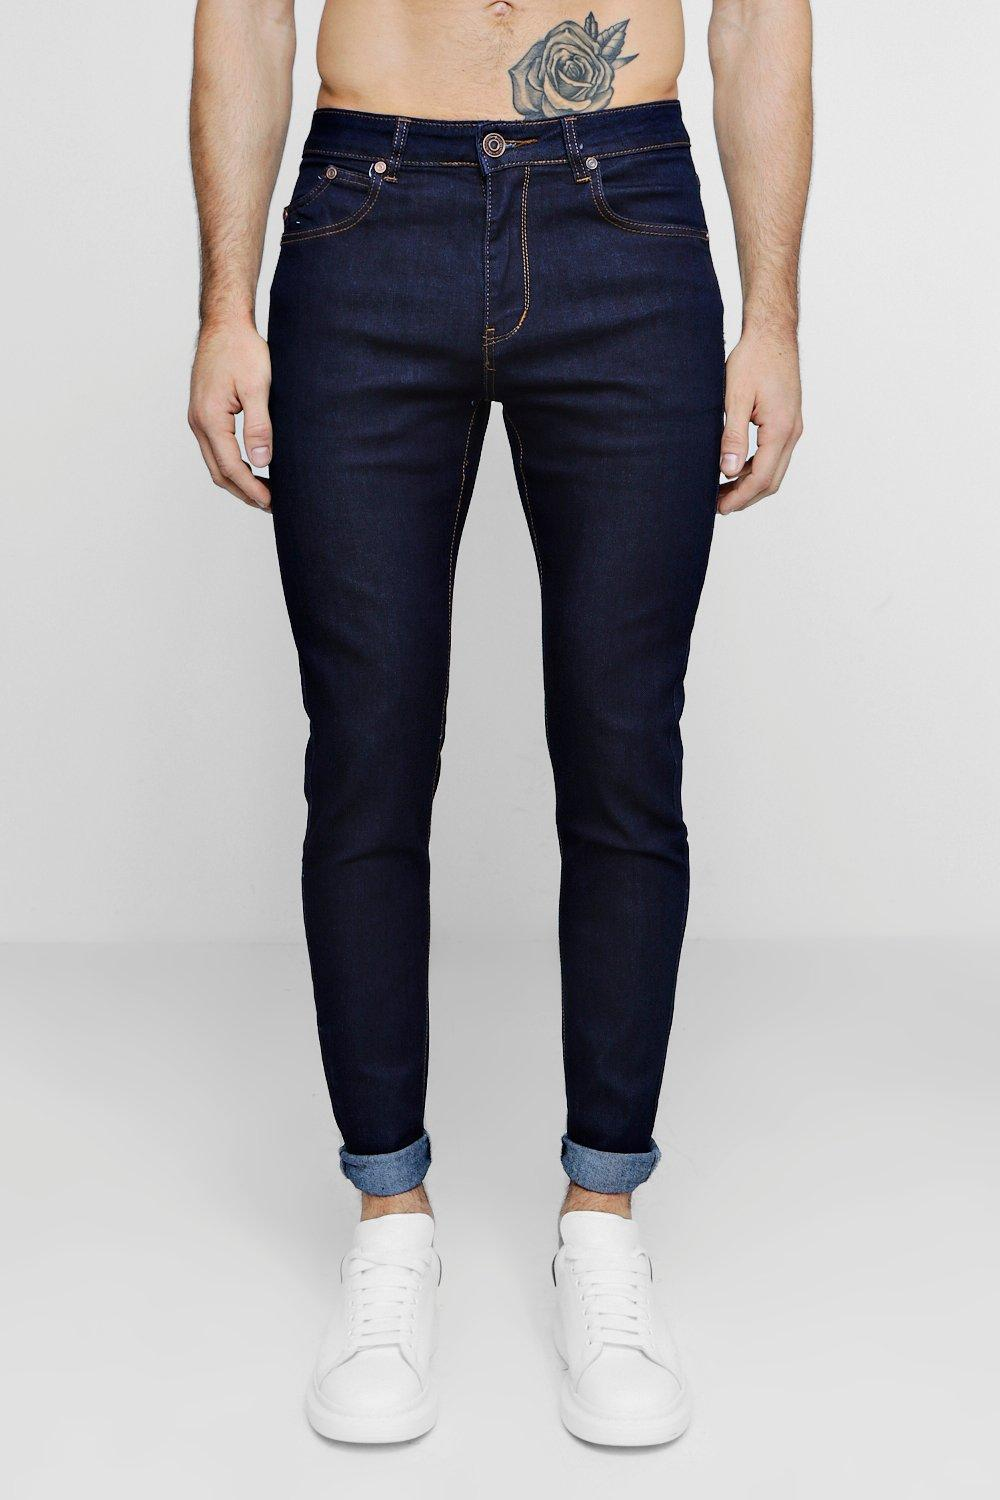 Raw Indigo Skinny Smart Jeans at boohoo.com